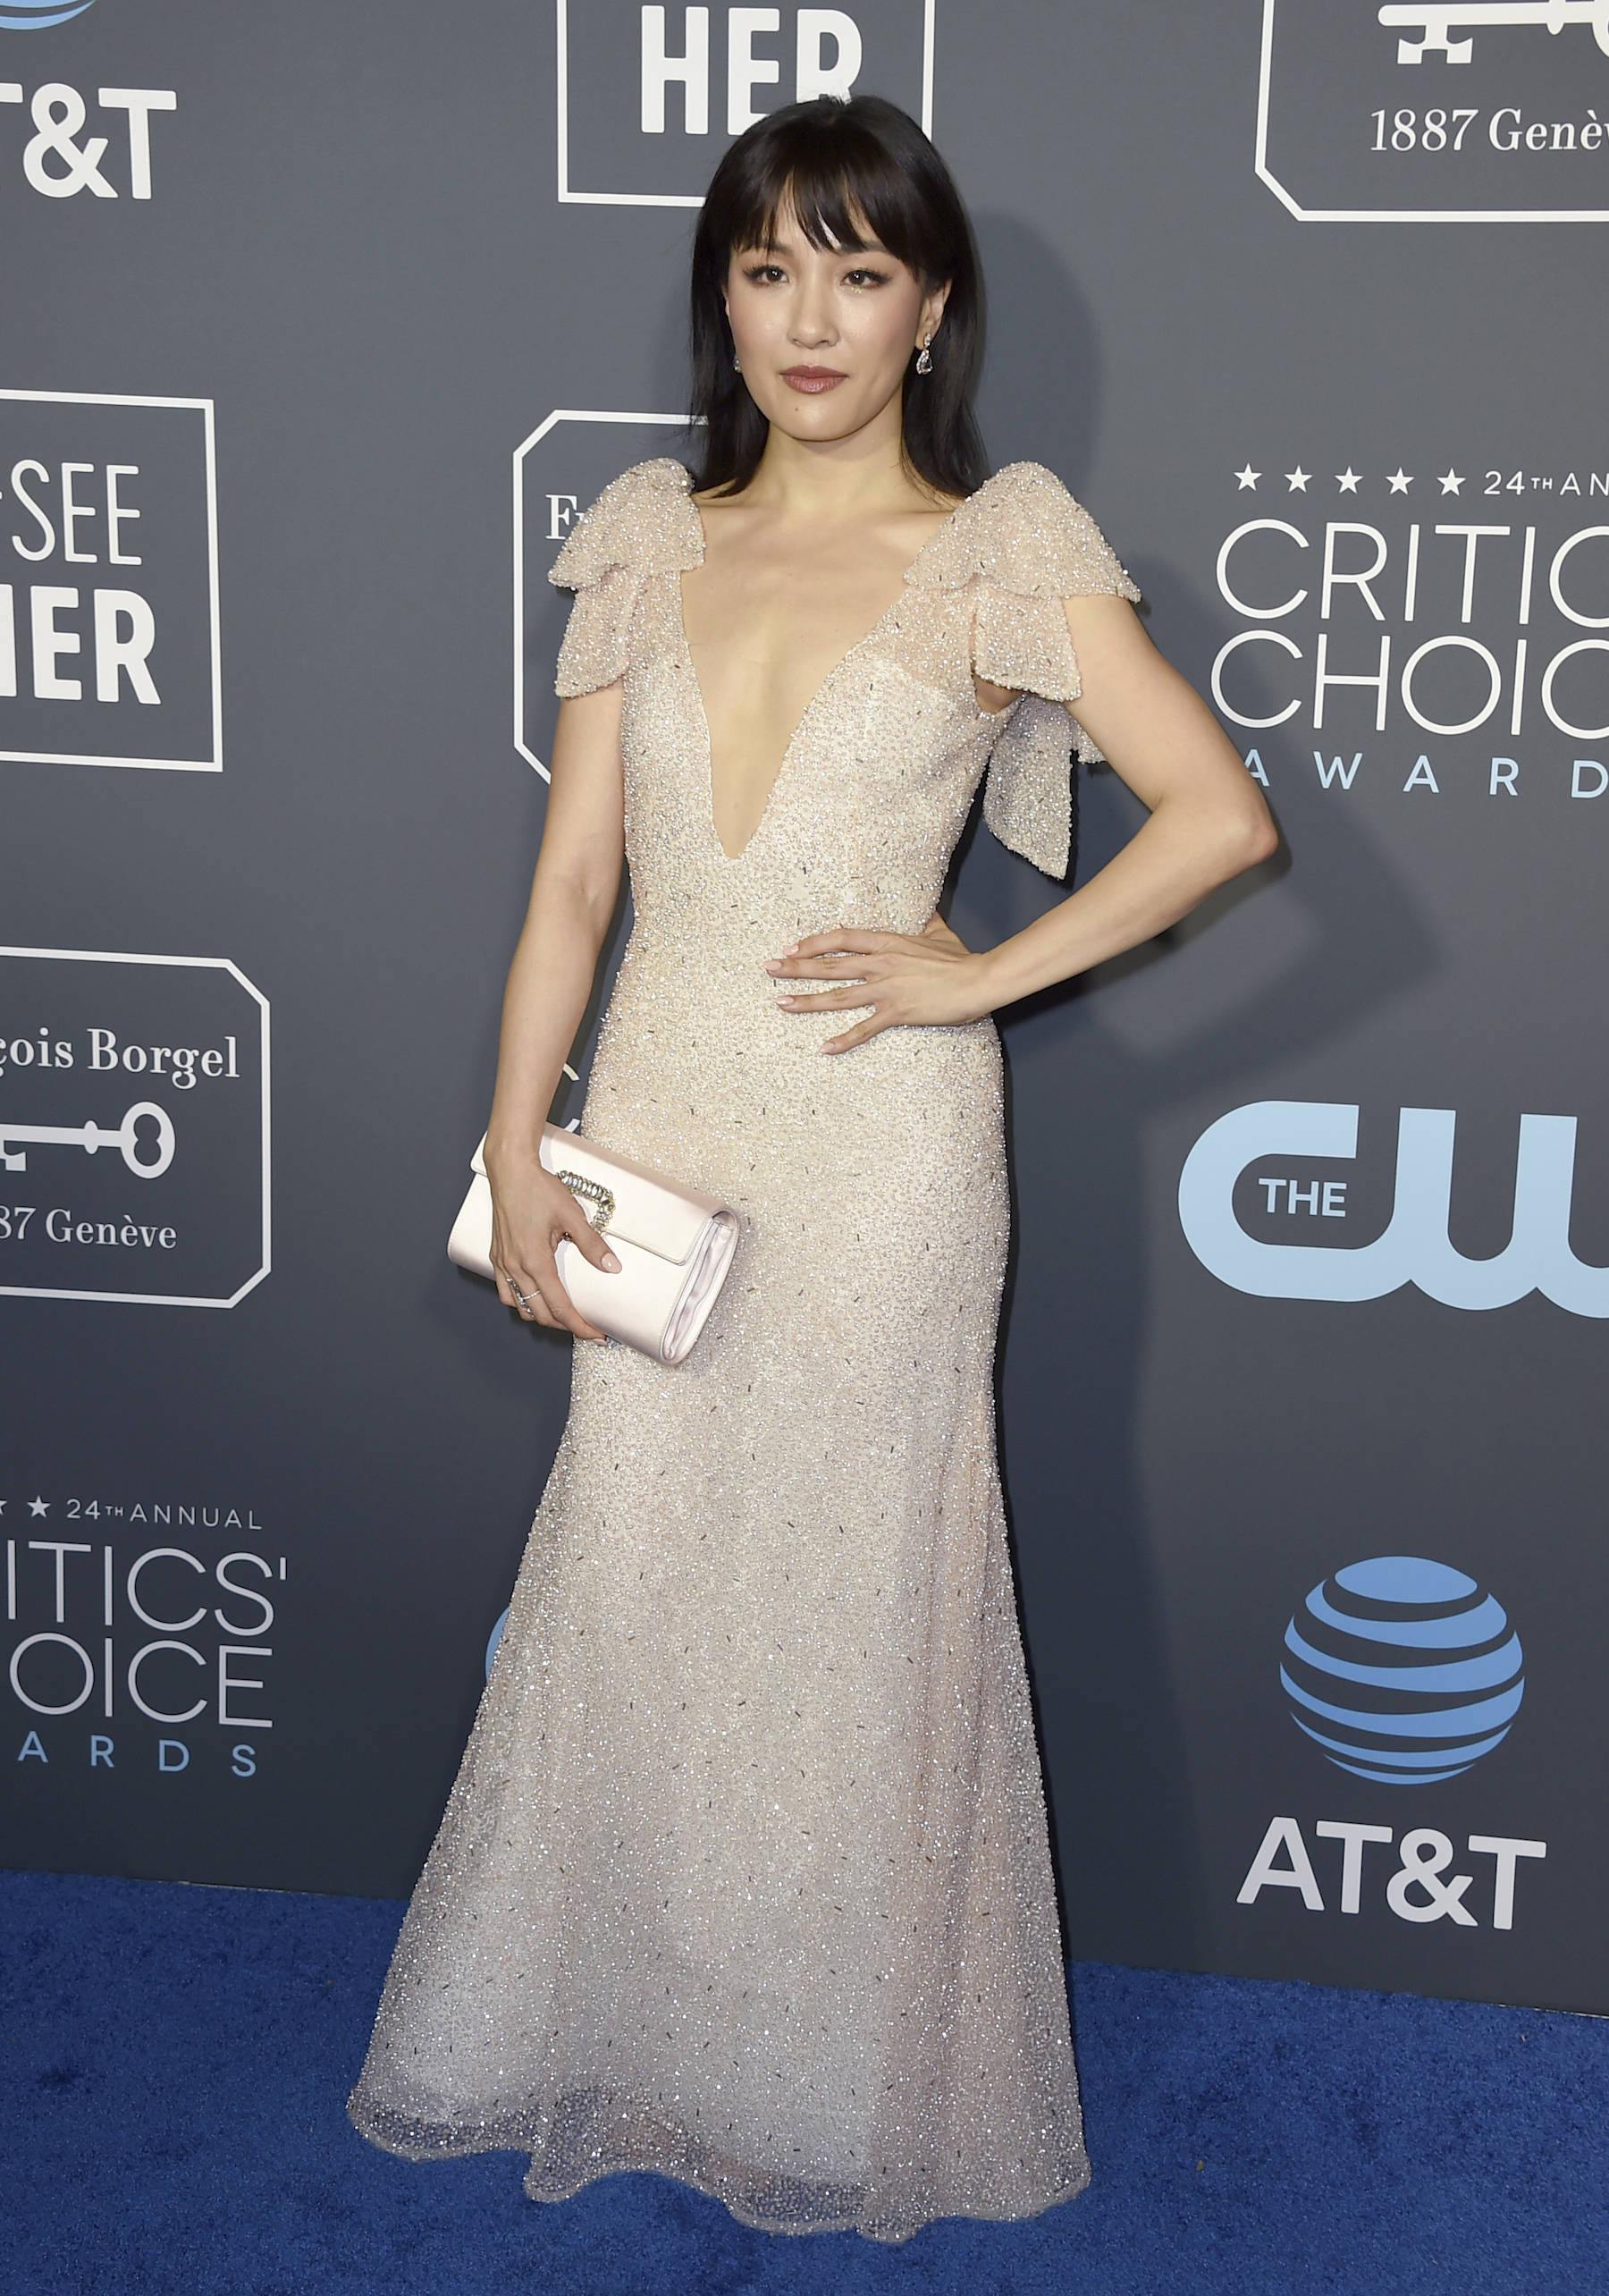 <div class='meta'><div class='origin-logo' data-origin='AP'></div><span class='caption-text' data-credit='Jordan Strauss/Invision/AP'>Constance Wu arrives at the 24th annual Critics' Choice Awards on Sunday, Jan. 13, 2019, at the Barker Hangar in Santa Monica, Calif.</span></div>